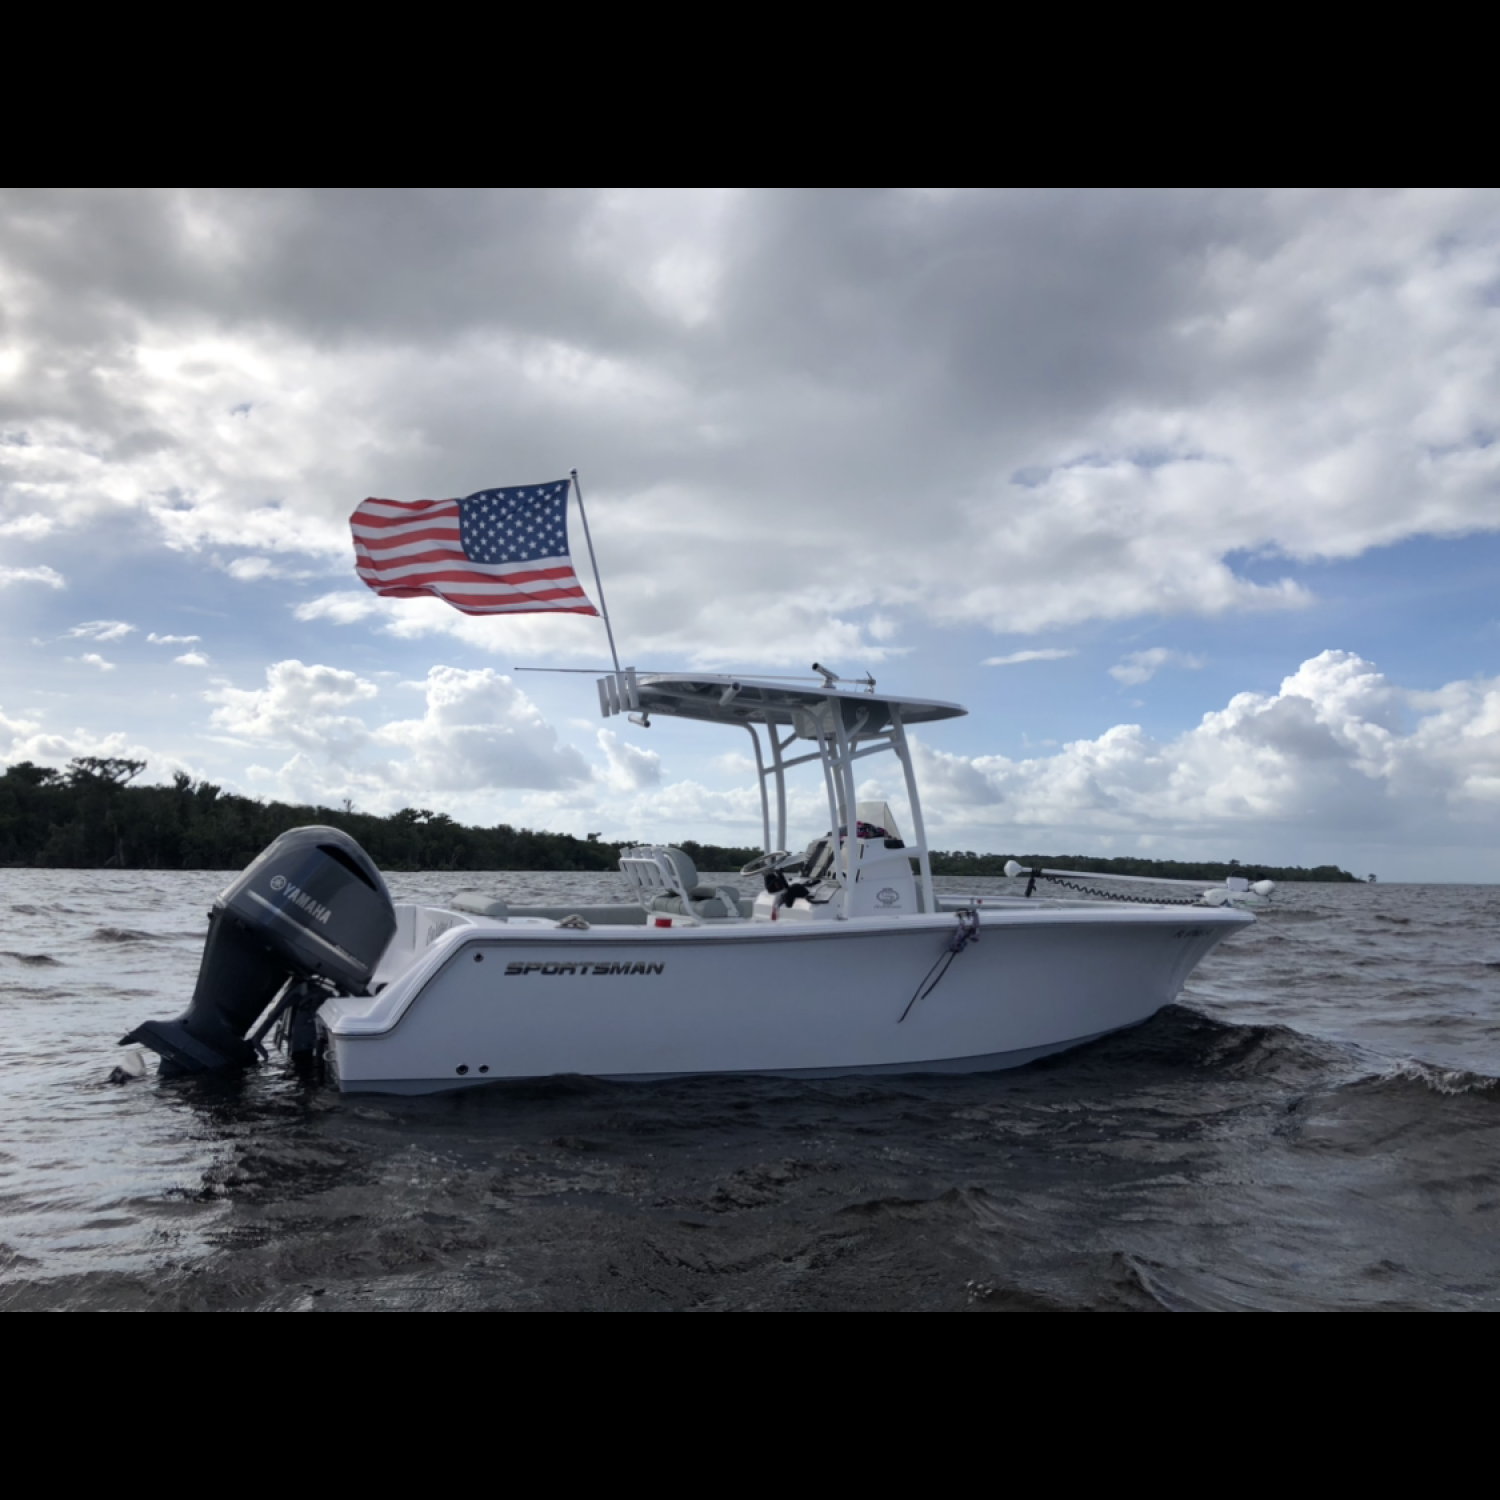 Title: Freedom of summertime! - On board their Sportsman Open 232 Center Console - Location: Lake George, Florida. Participating in the Photo Contest #SportsmanOctober2020